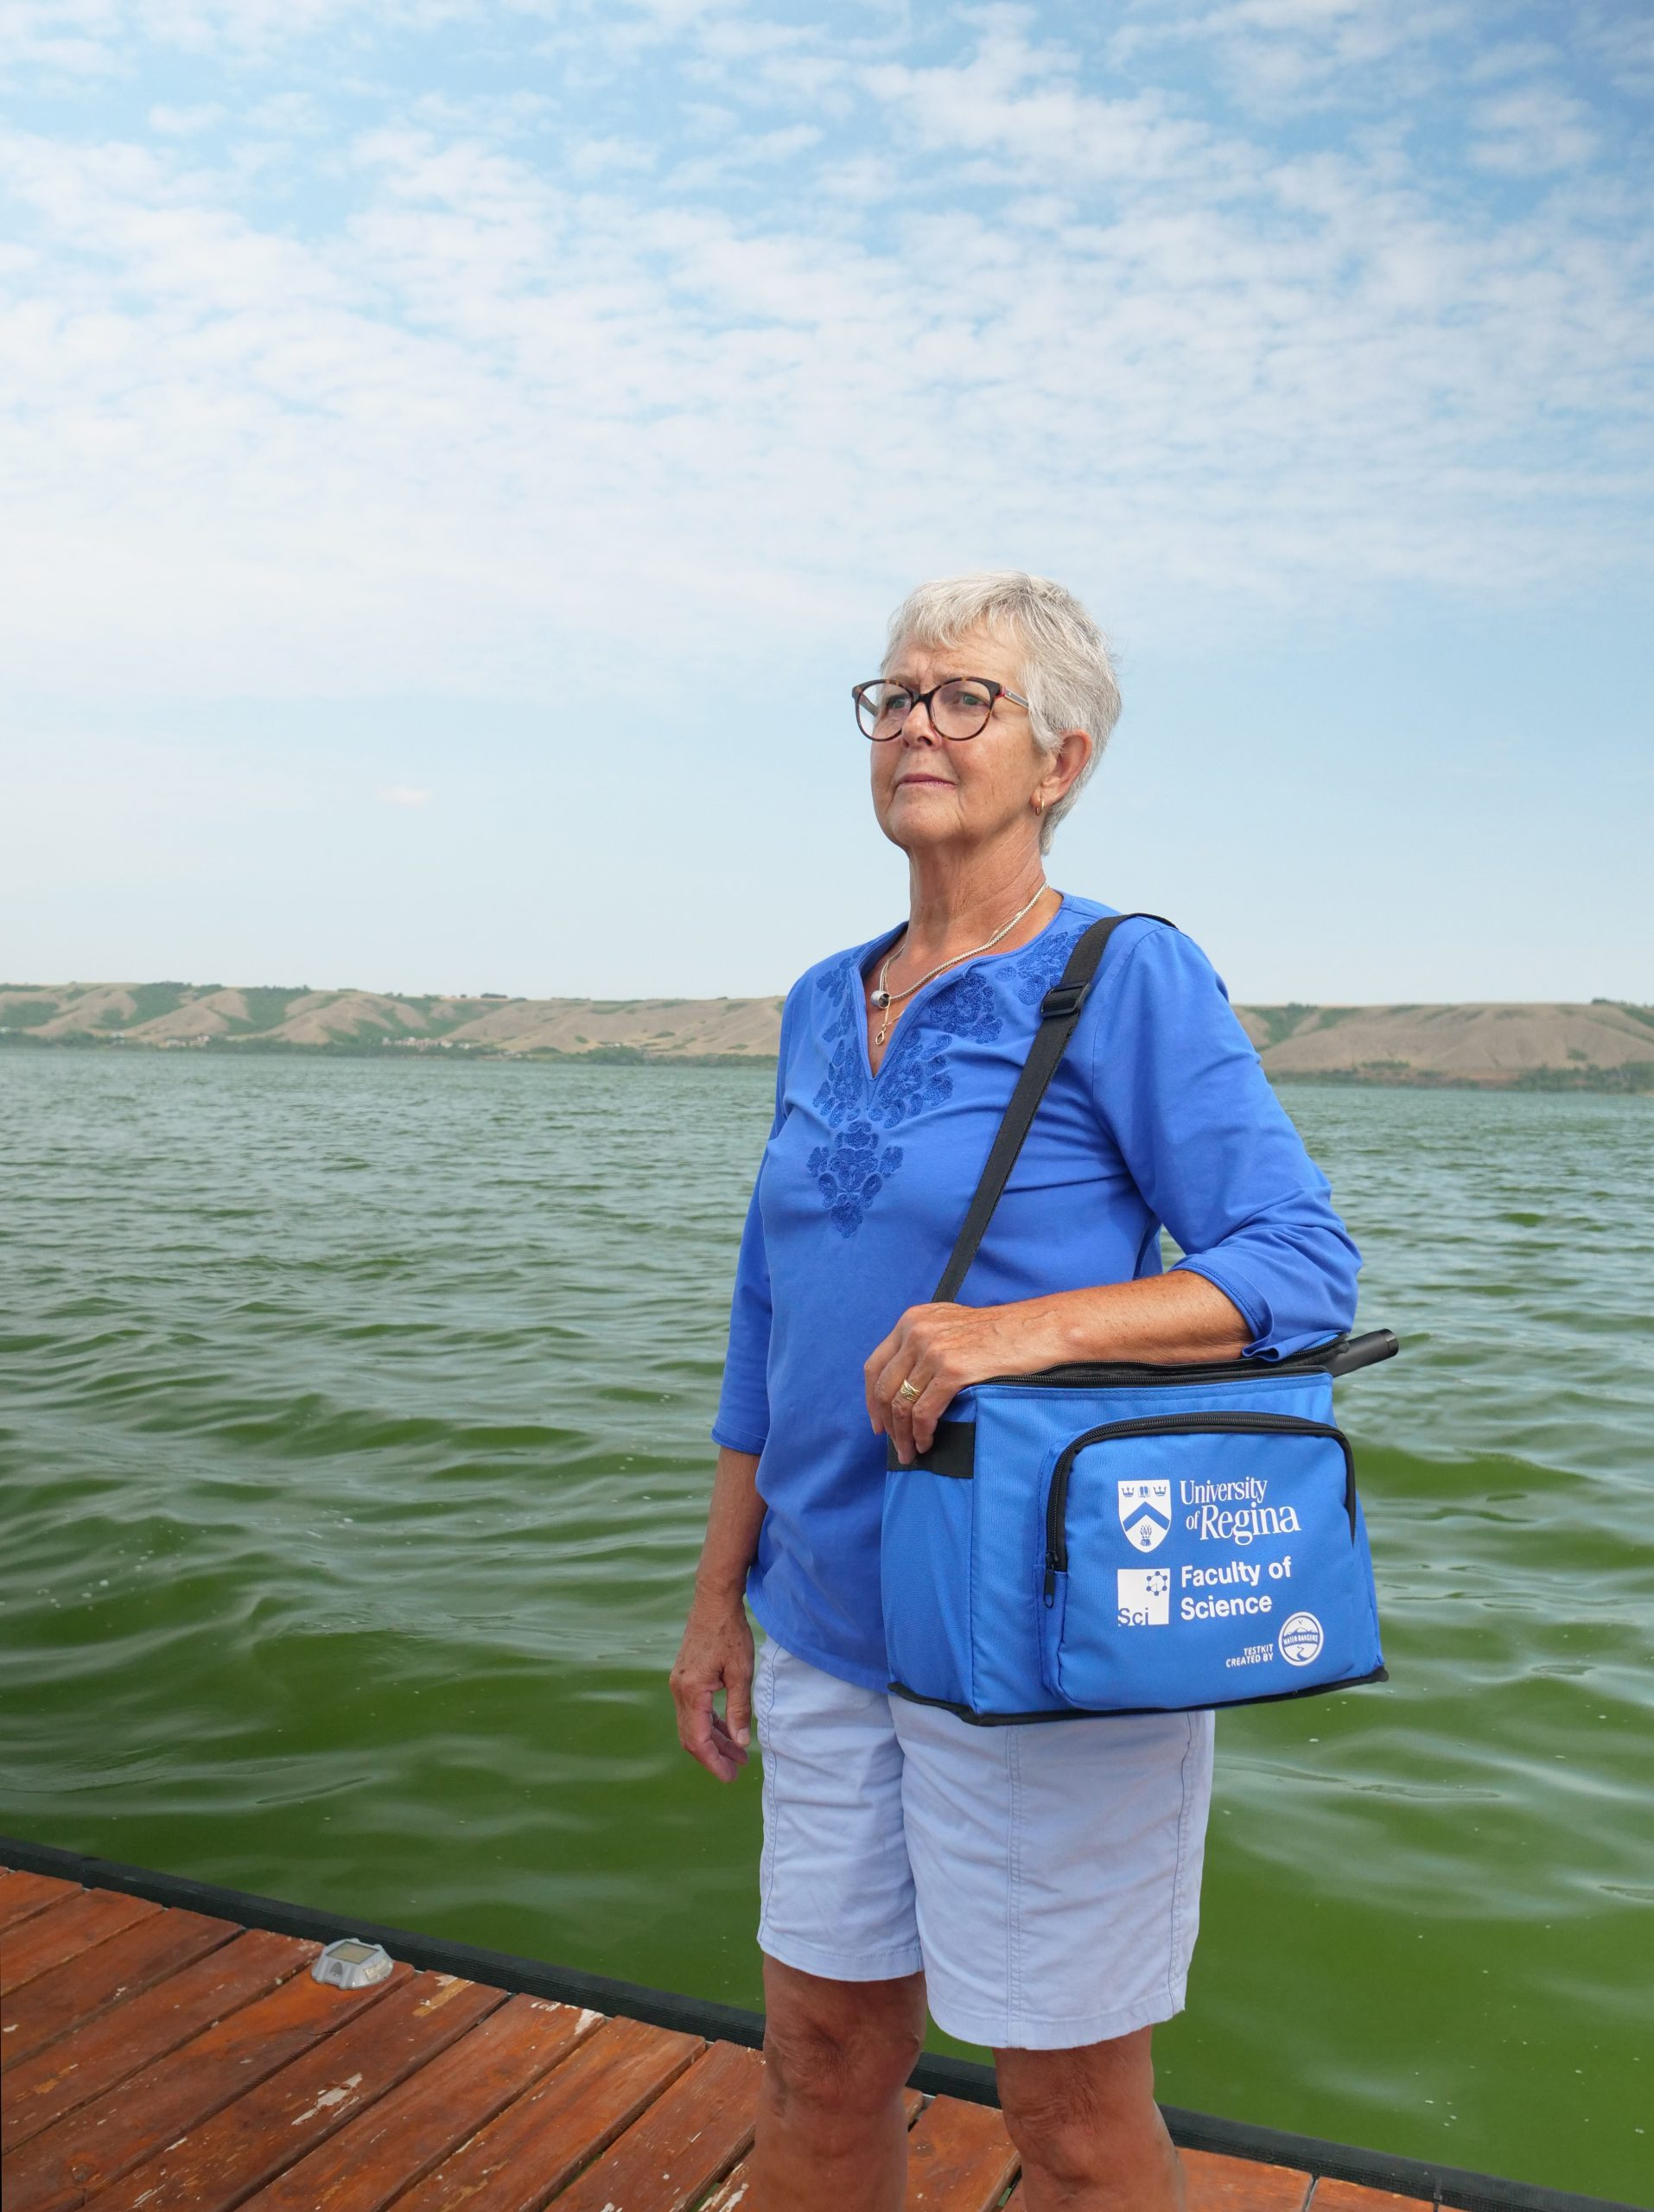 Citizen scientist Joni Darke has joined forces with the University of Regina's community-based, water monitoring program to test the water on Saskatchewan's Echo Lake. (Photo by Arthur Ward)